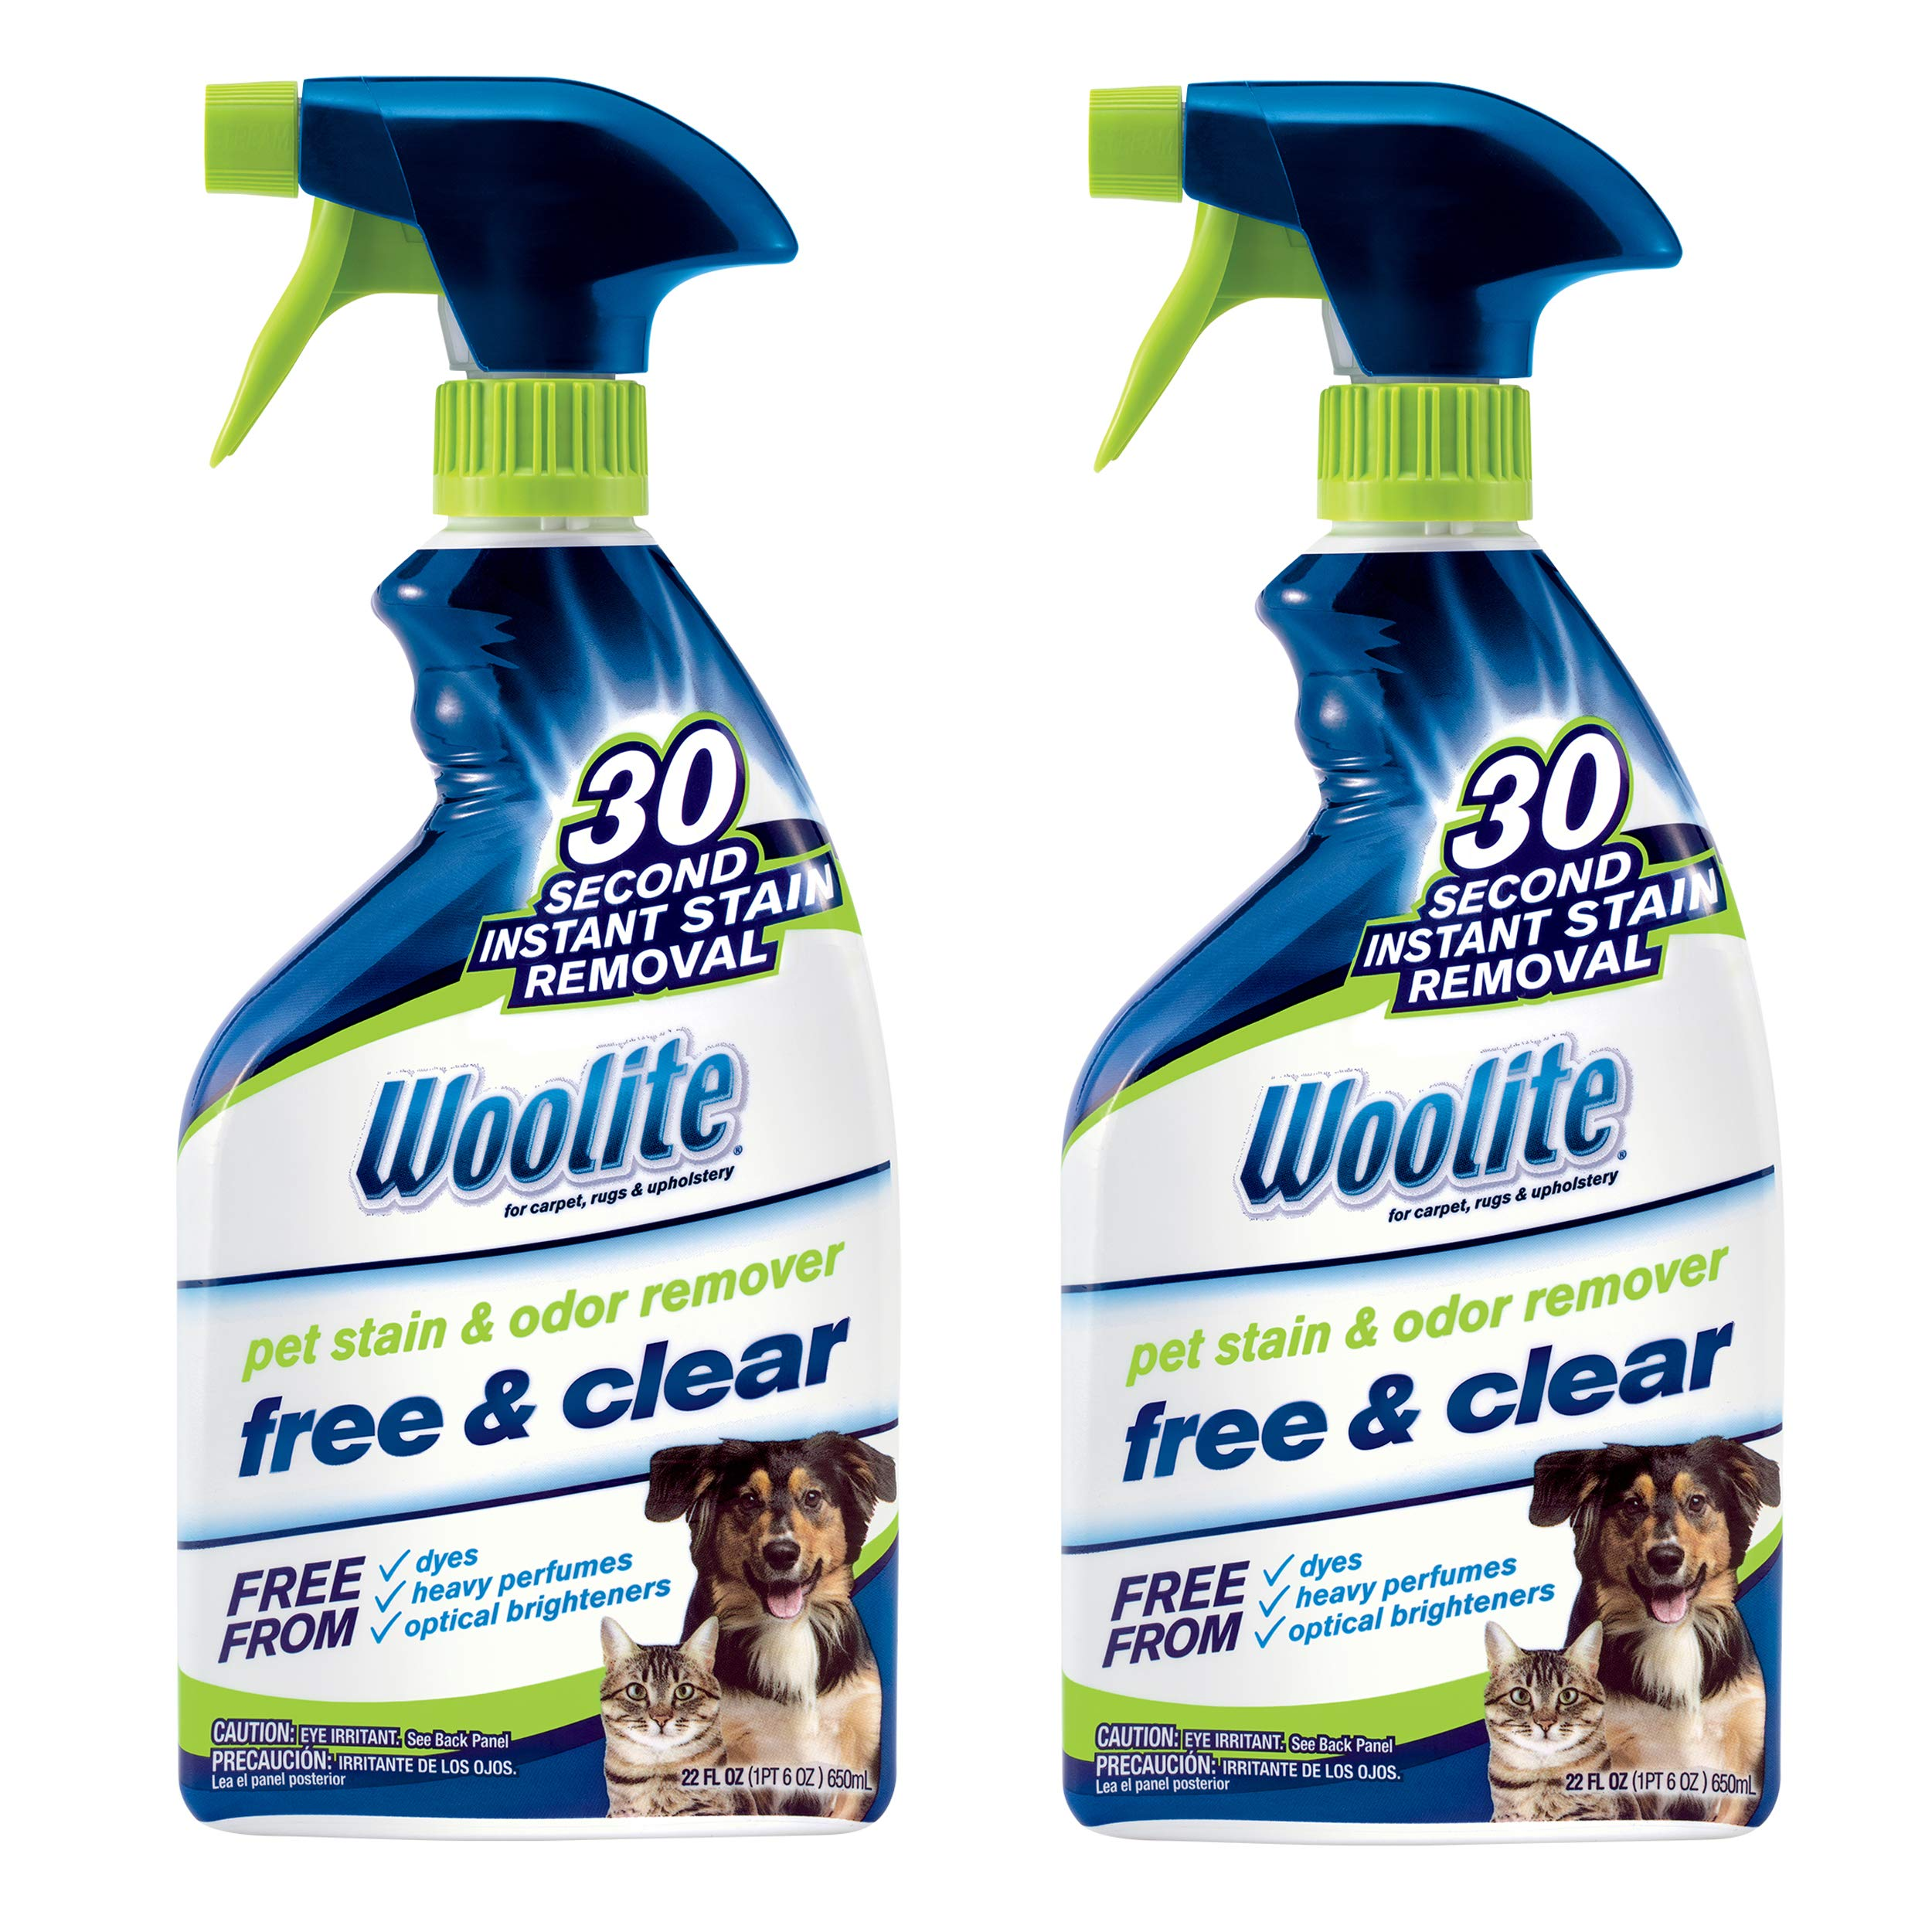 Woolite Free & Clear, Pet Stain & Odor Remover, 22oz (Pack of 2), 2719 by Bissell